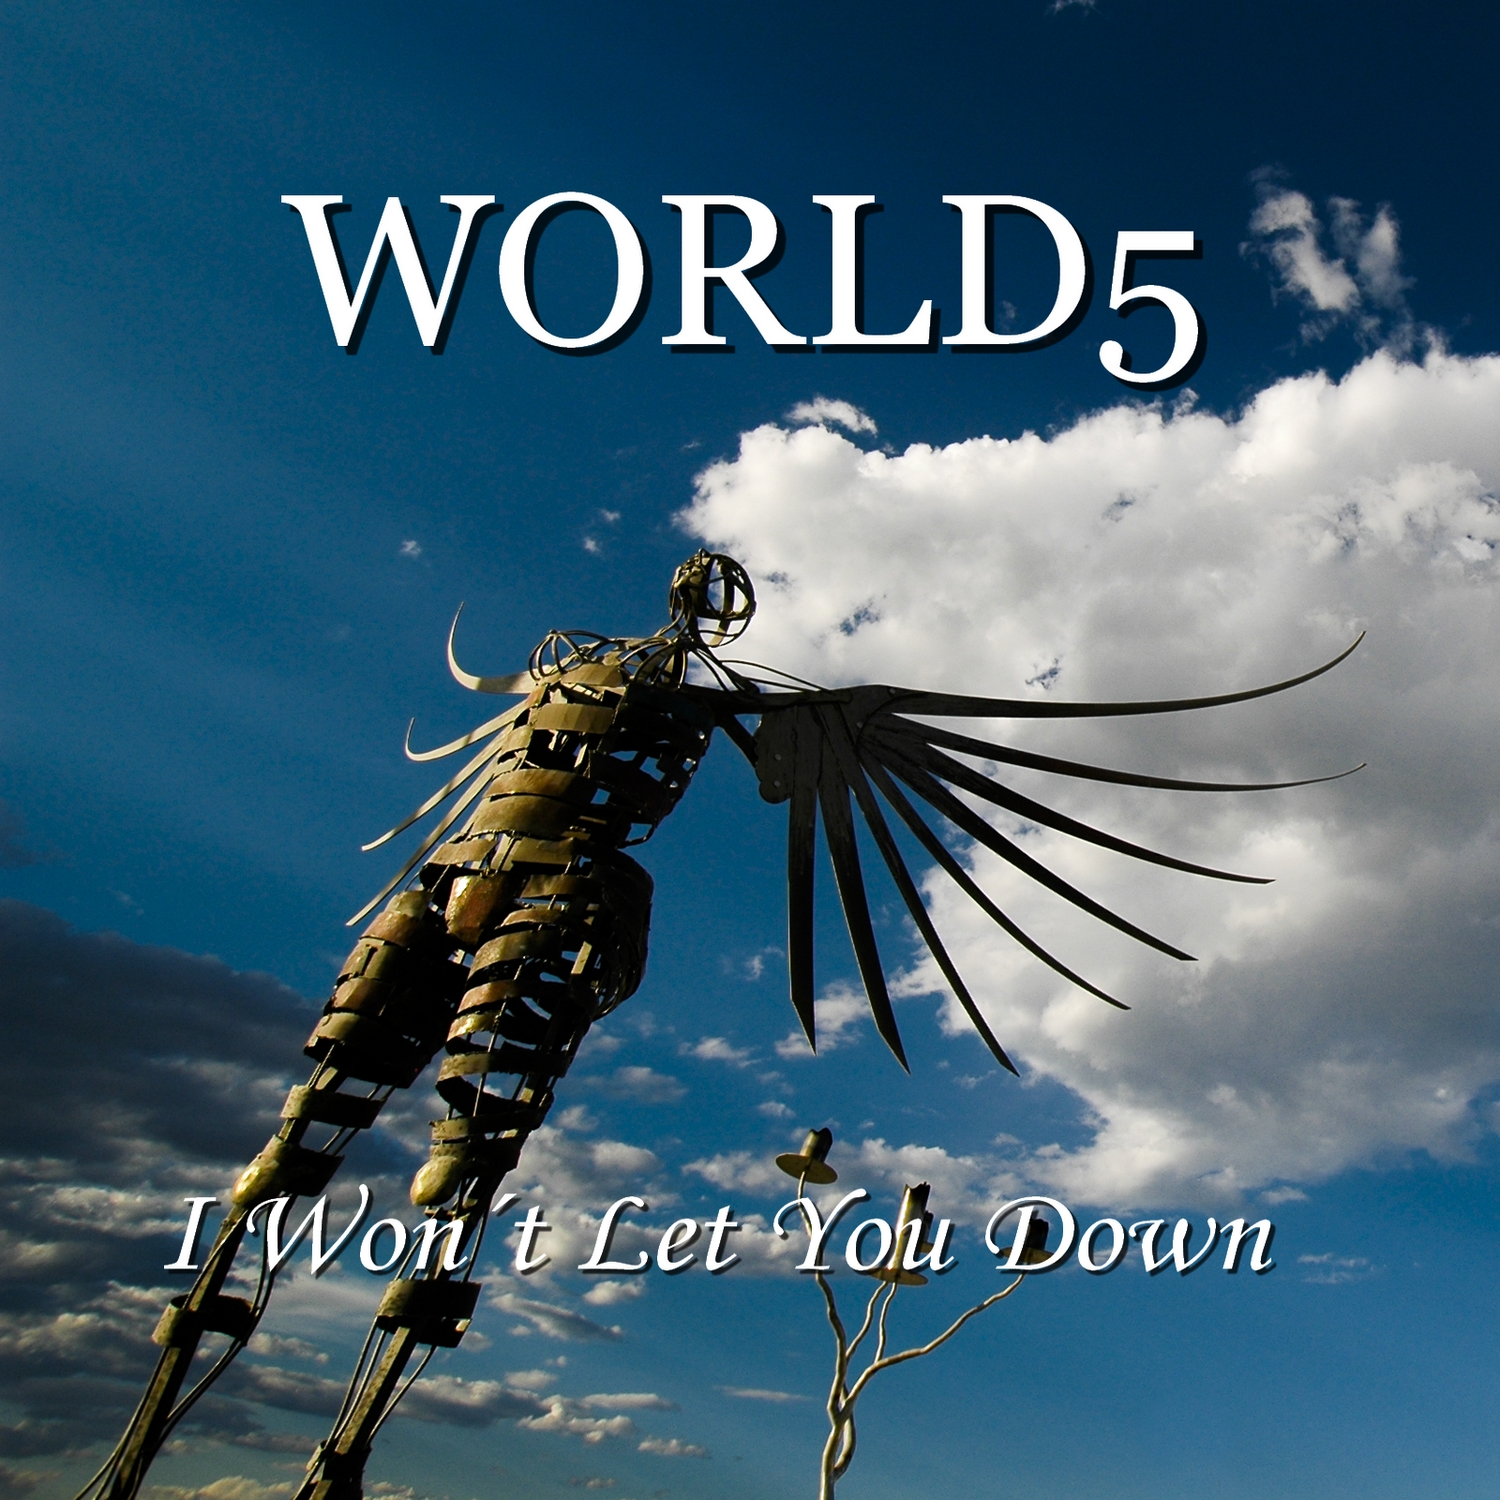 WORLD5 - I Won't Let You Down (single)